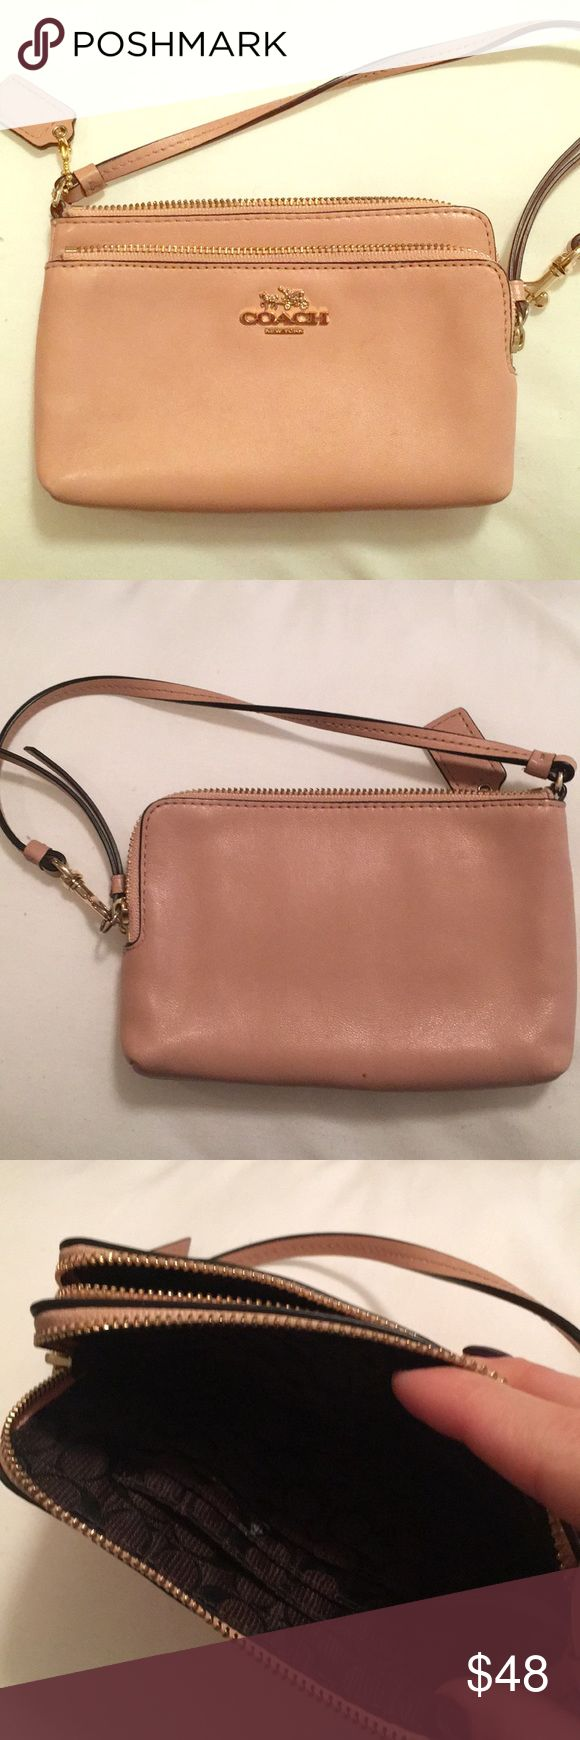 Coach clutch Used Coach clutch! Light pinkish roseish nude color. Normal wear. Leather. Few scratches on leather and inside is clean minus one mark shown in photos Coach Bags Clutches & Wristlets